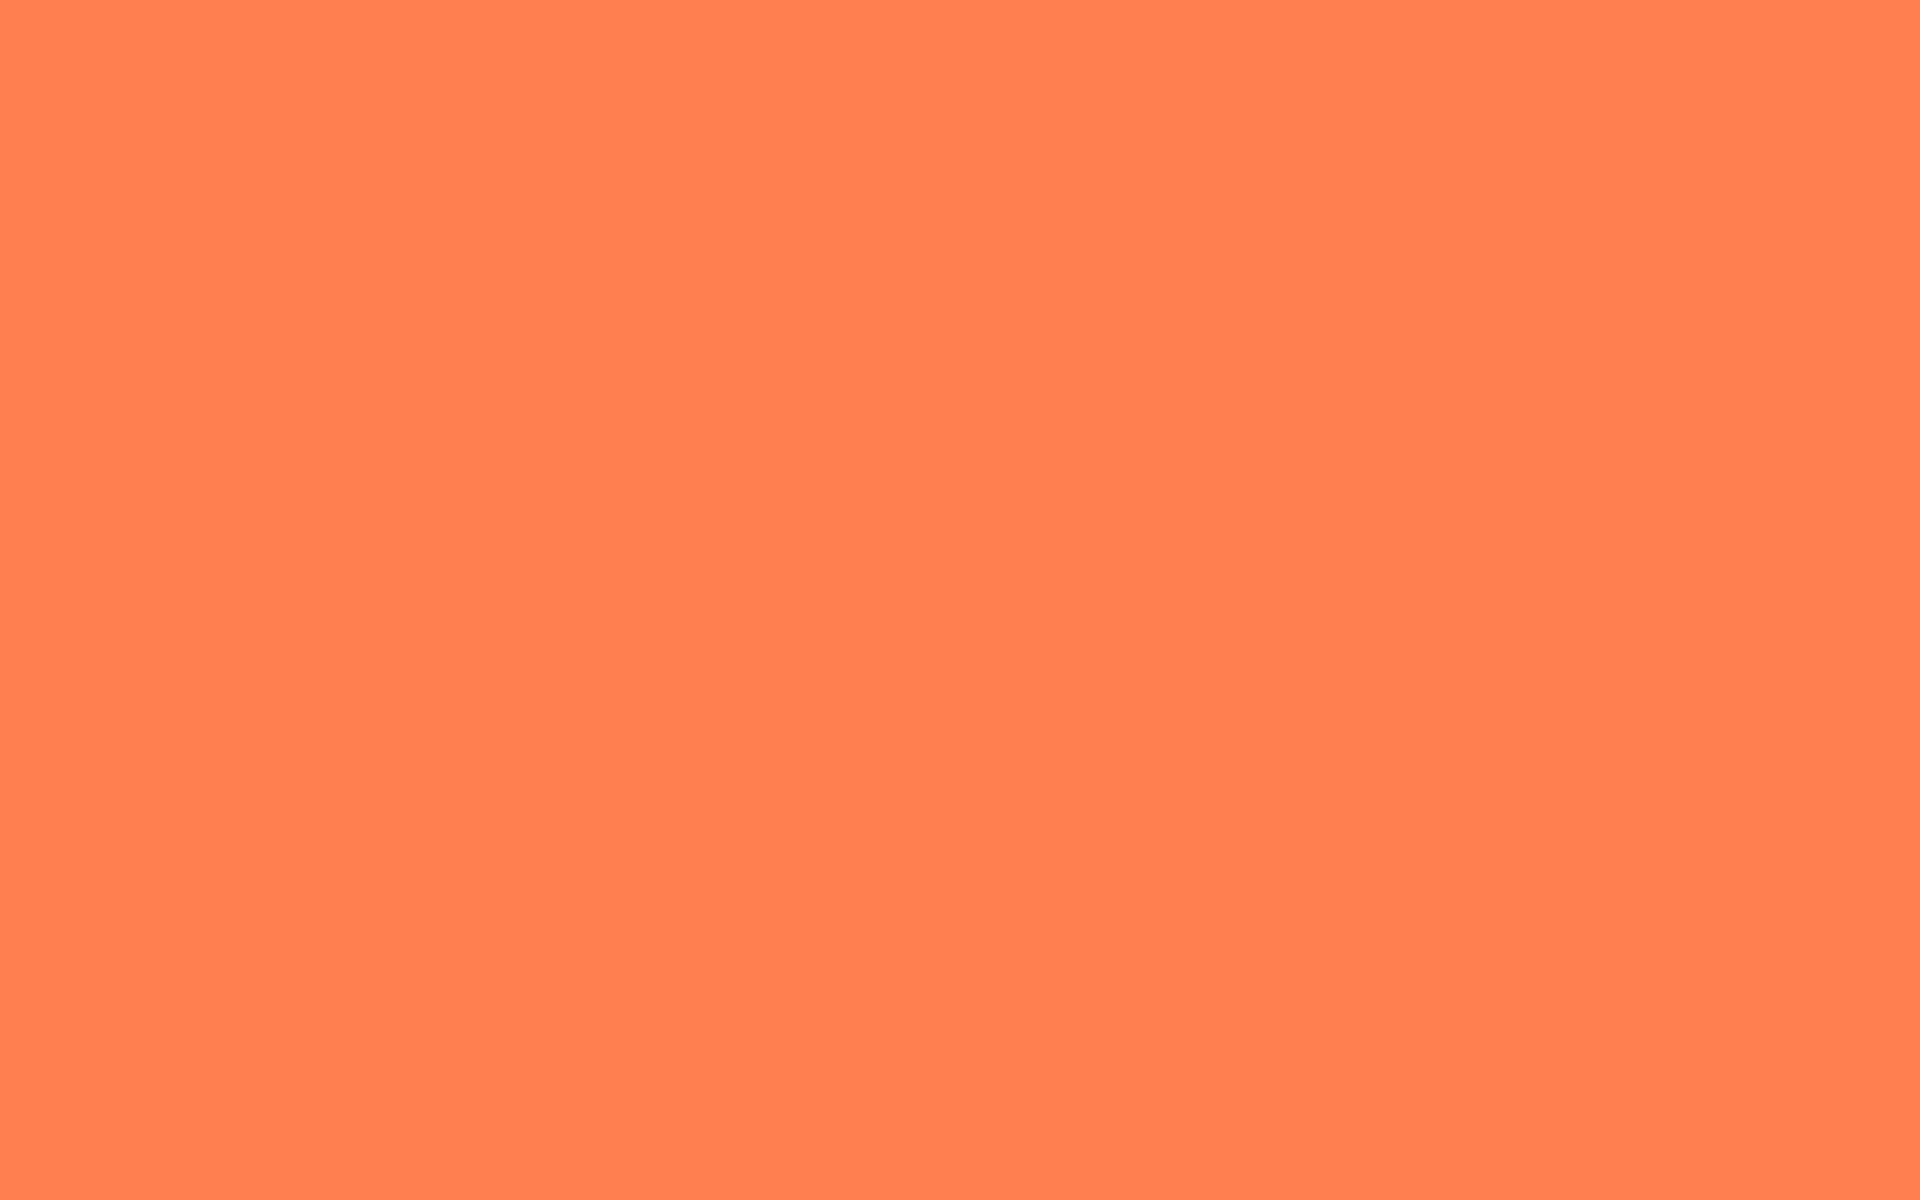 1920x1200 Coral Solid Color Background